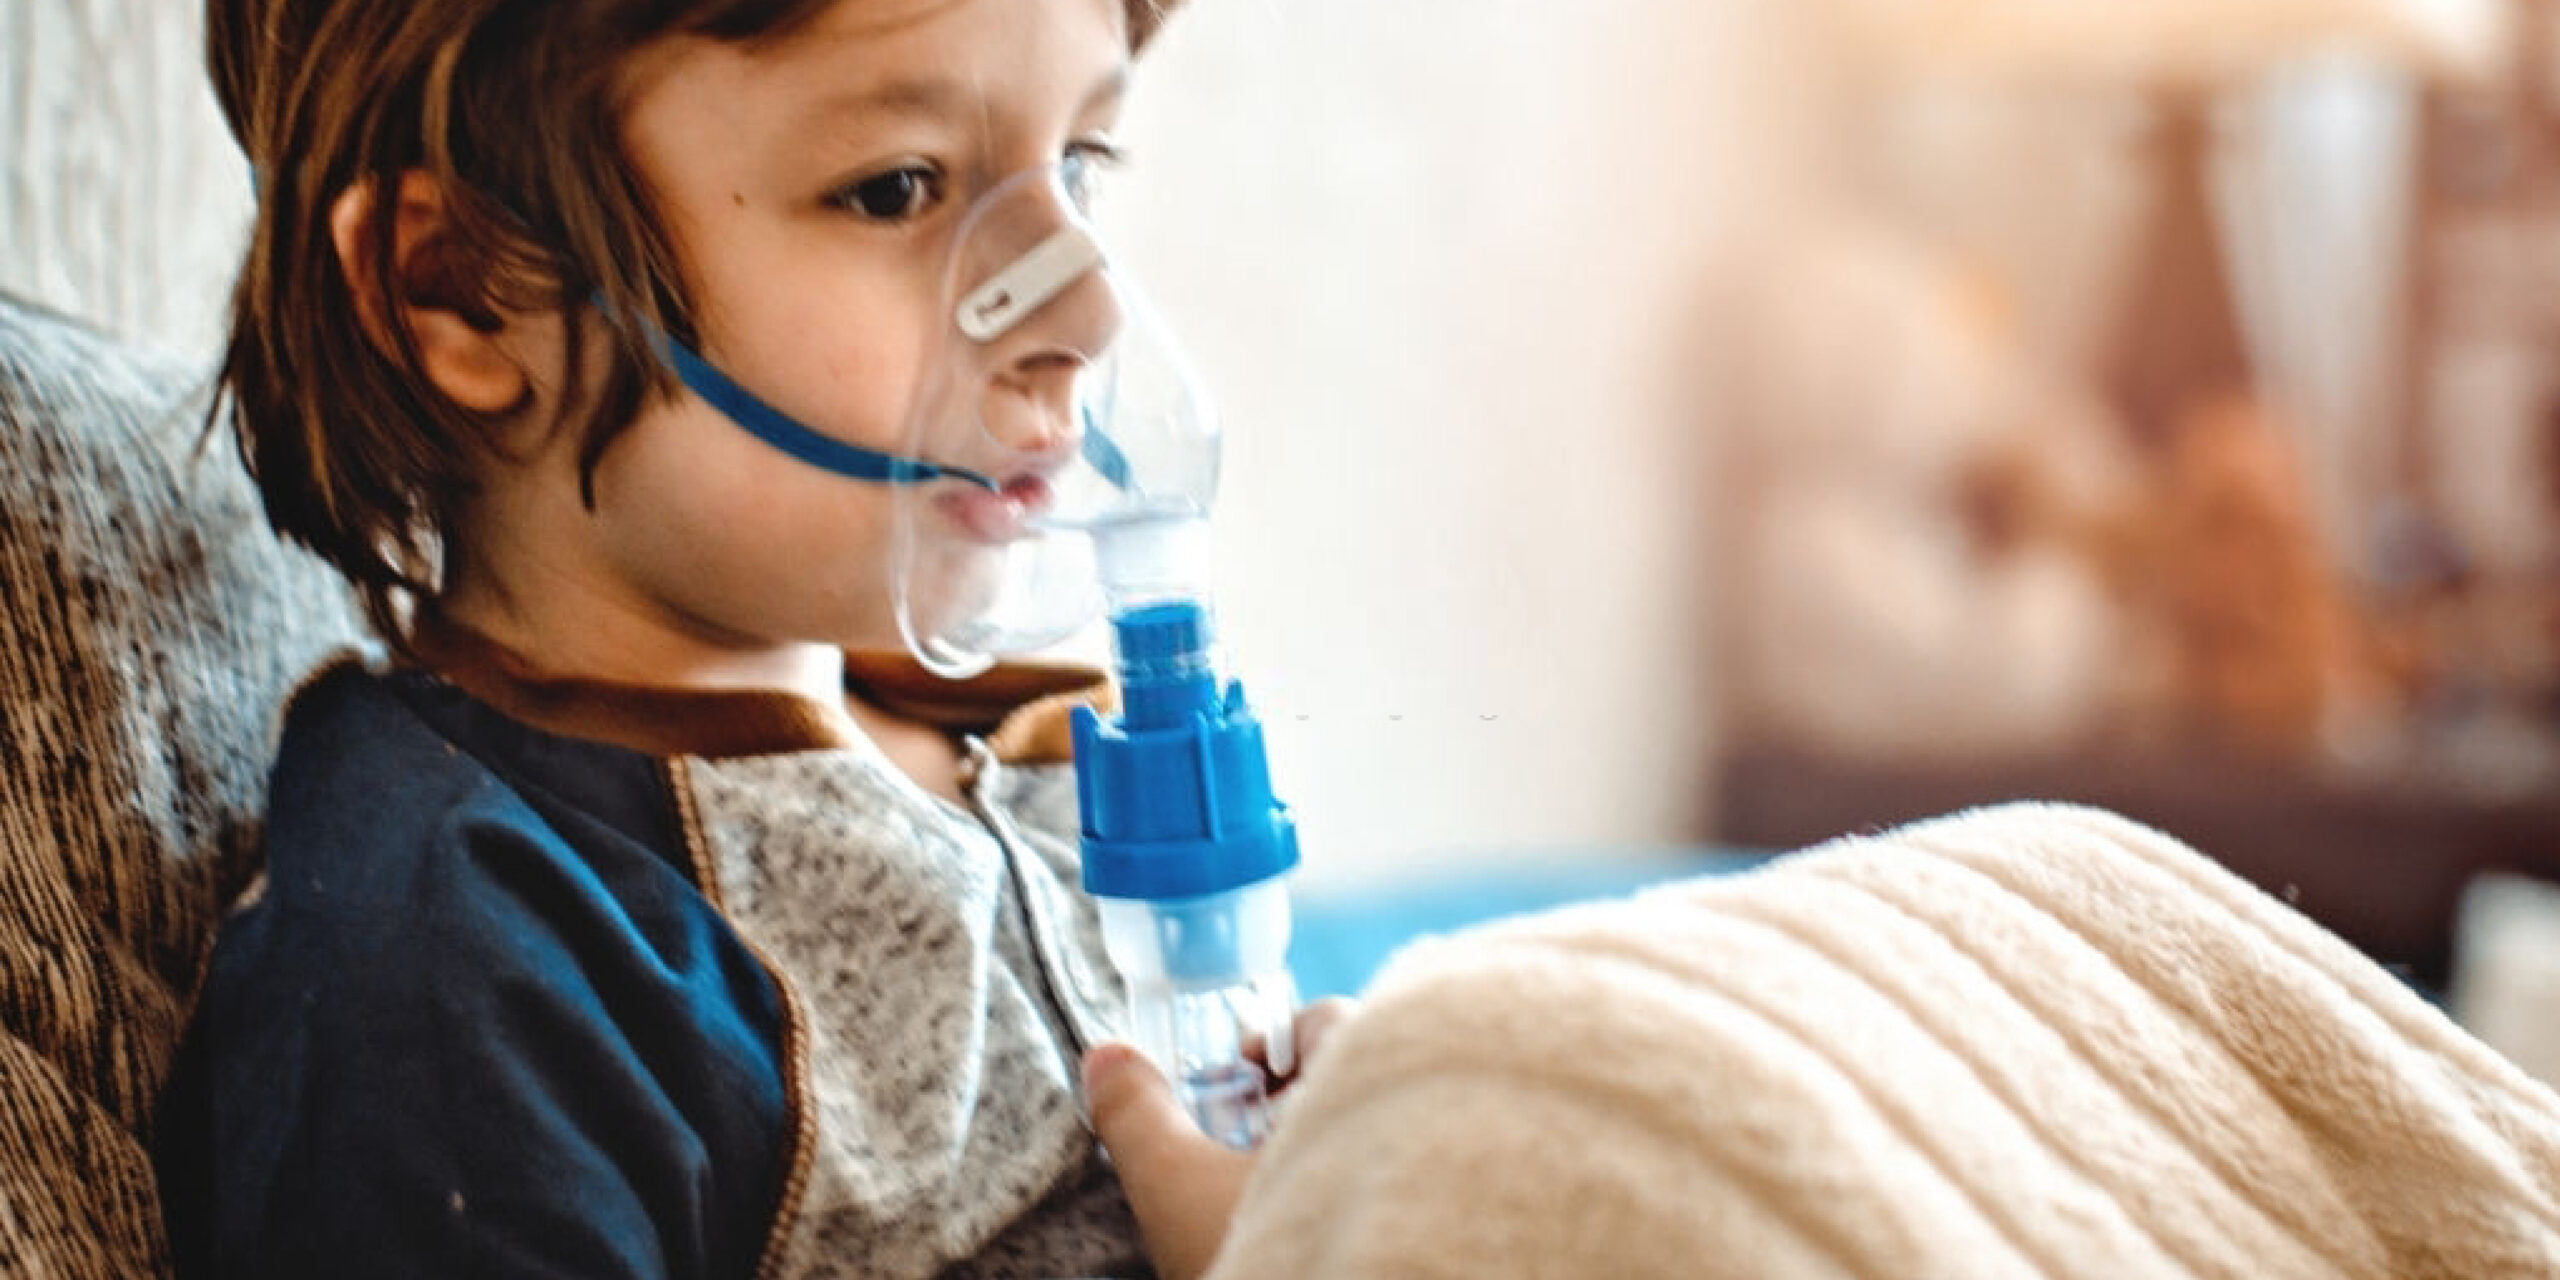 Top 7 Best Portable Nebulizer In 2021